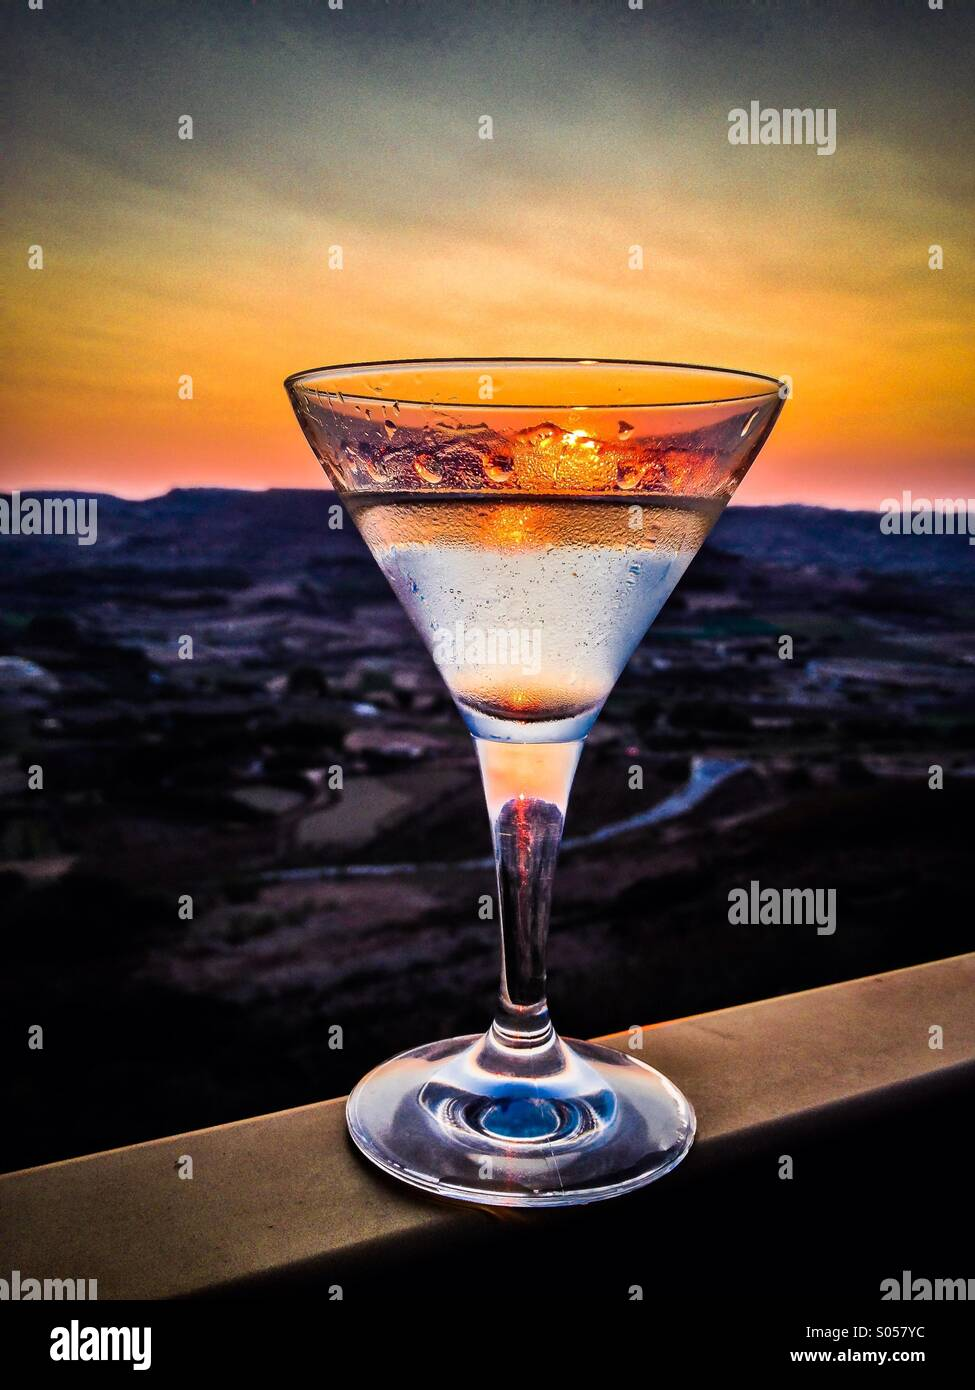 Cocktails at sunset - Stock Image